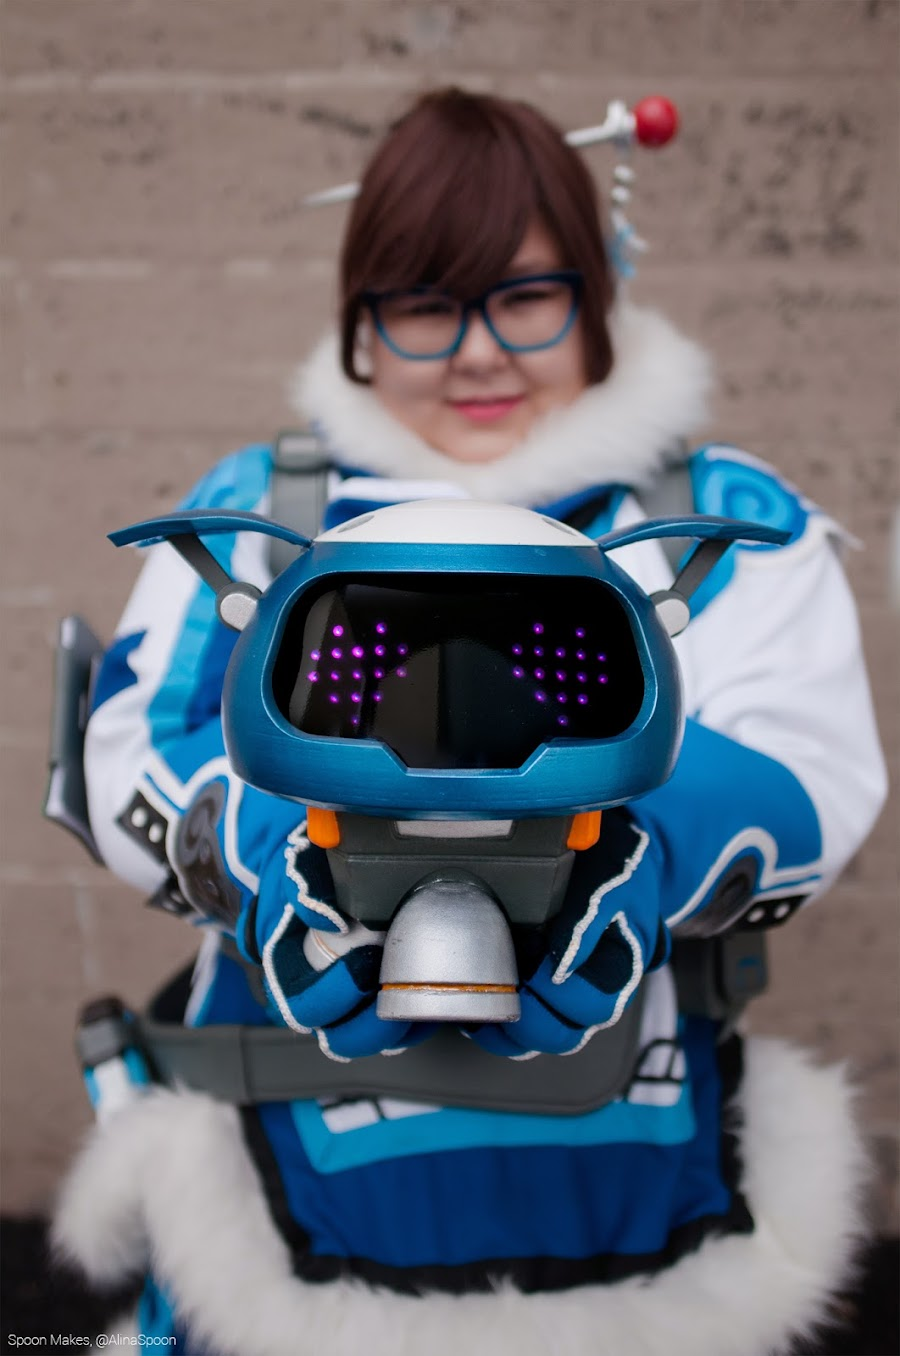 Alina as Mei from Overwatch, with her sidekick, Snowball